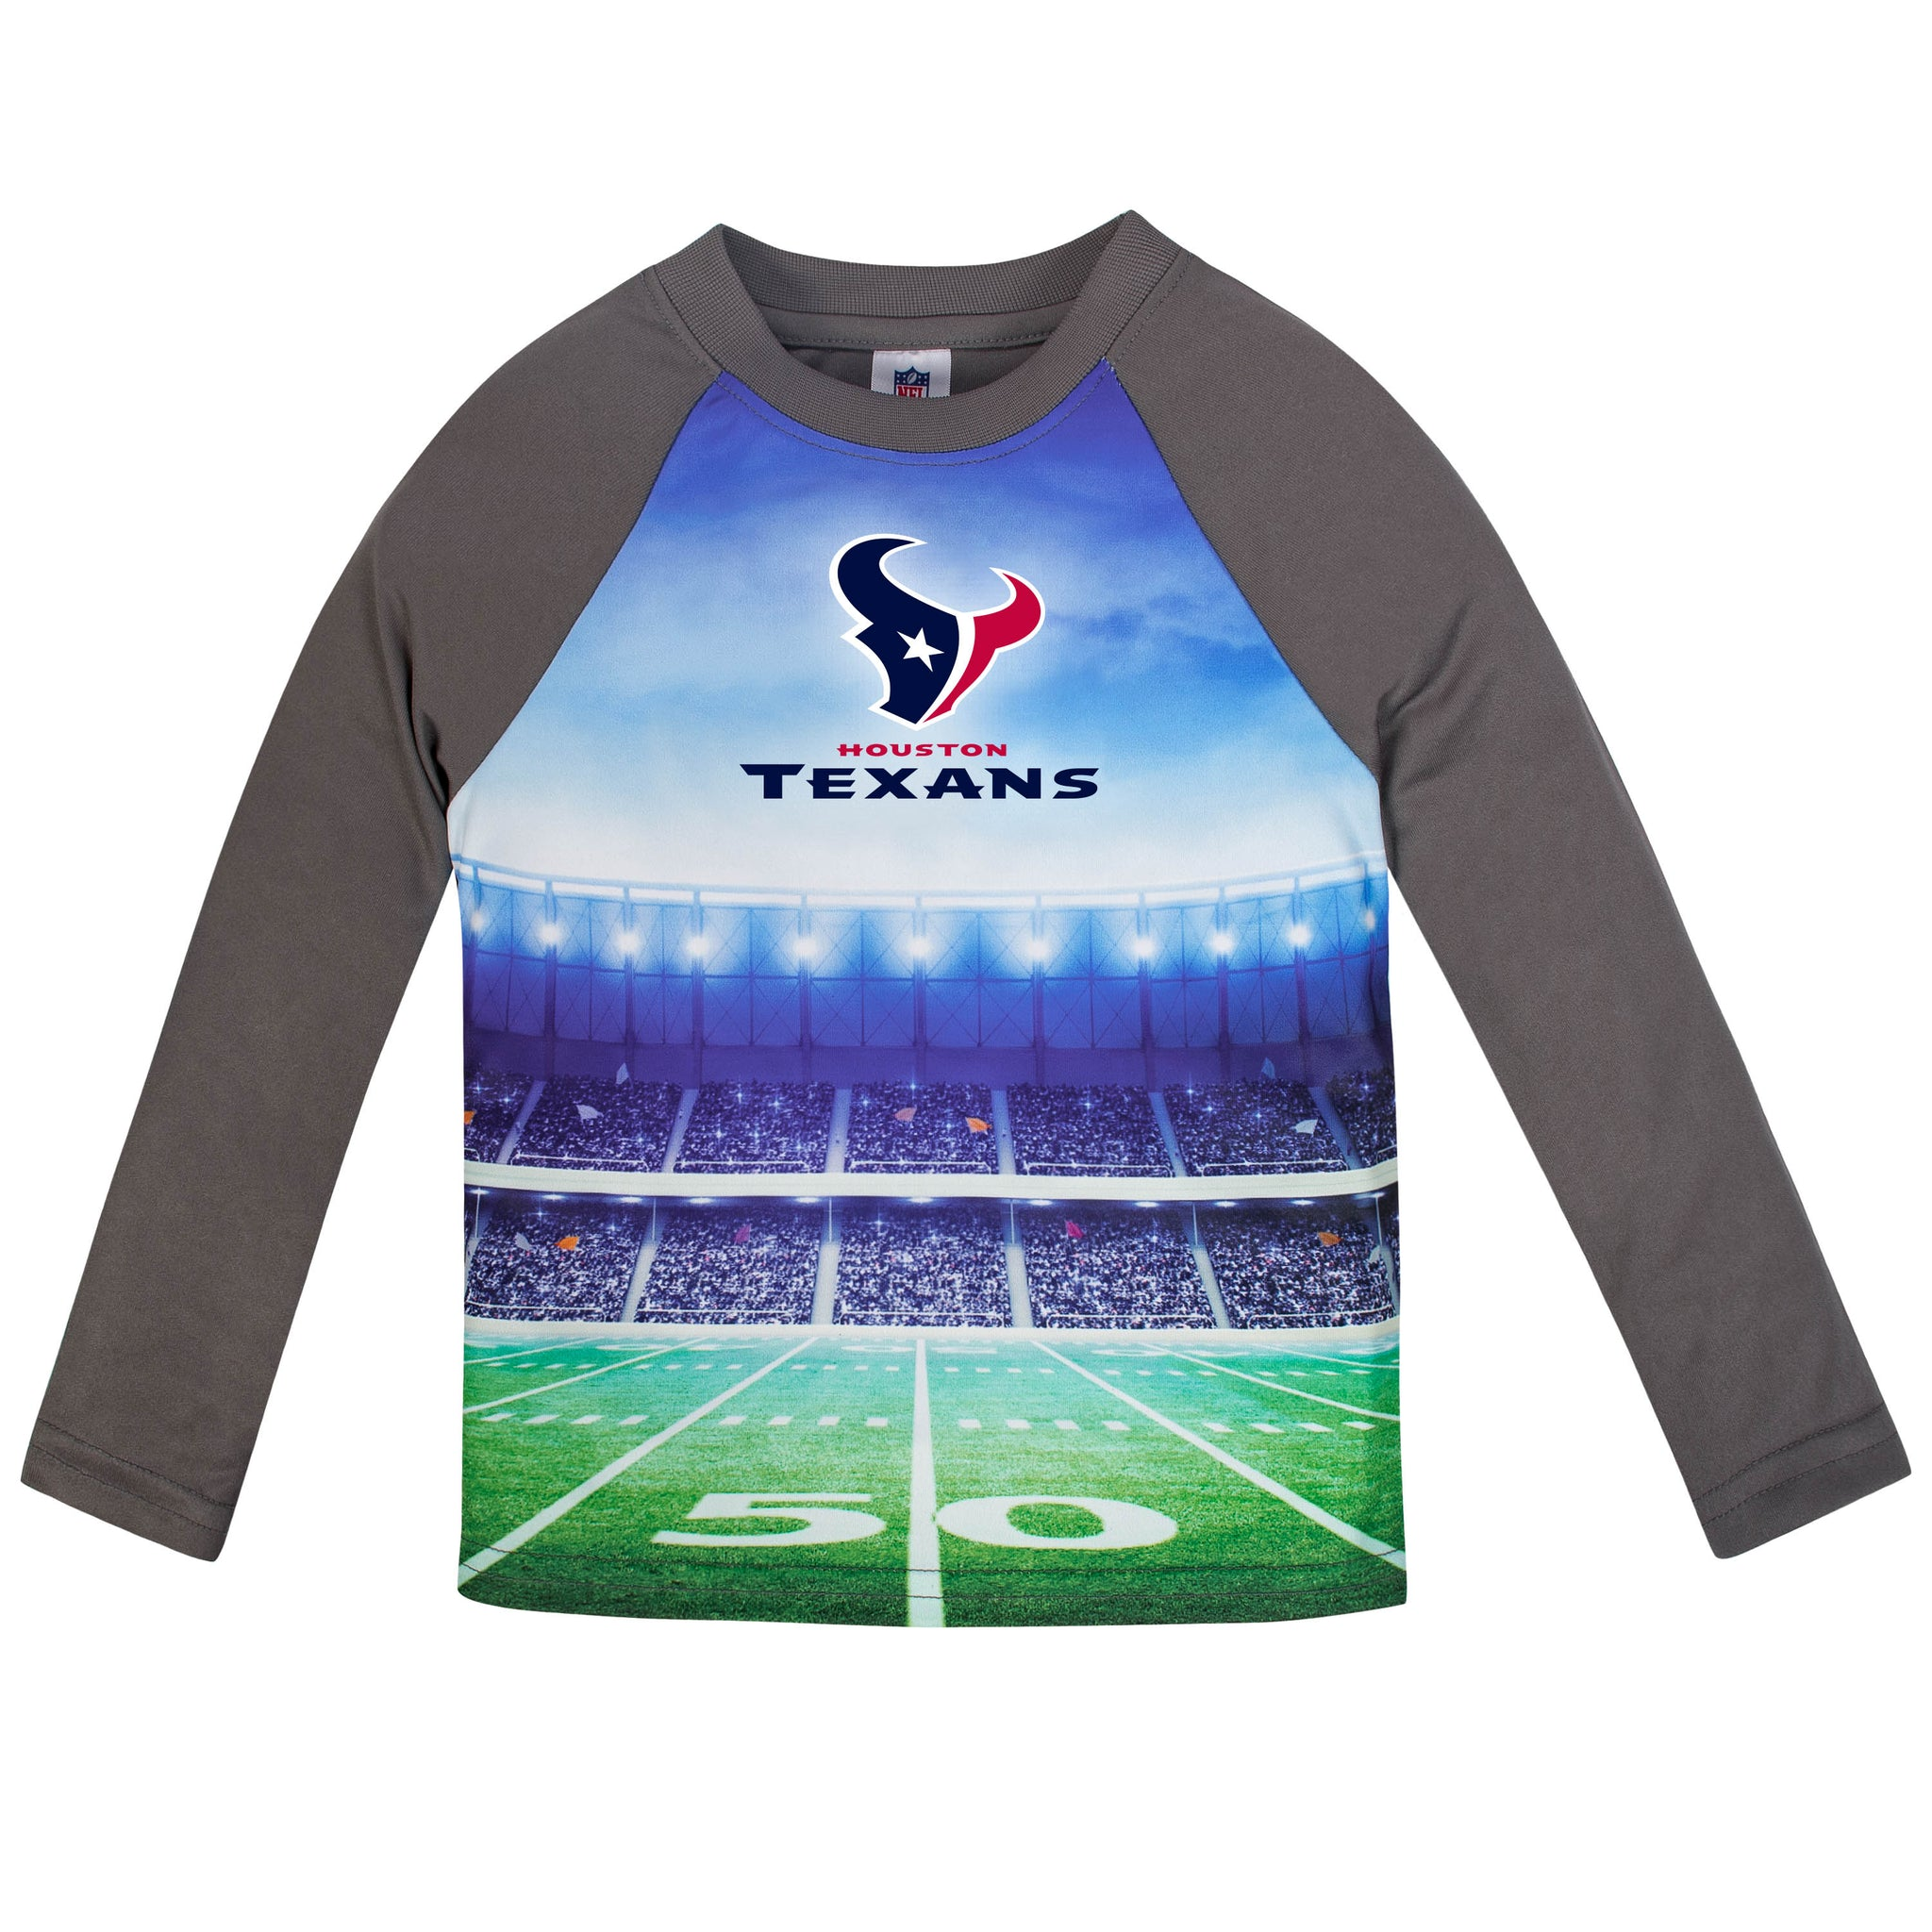 Houston Texans Boys Long Sleeve Tee Shirt